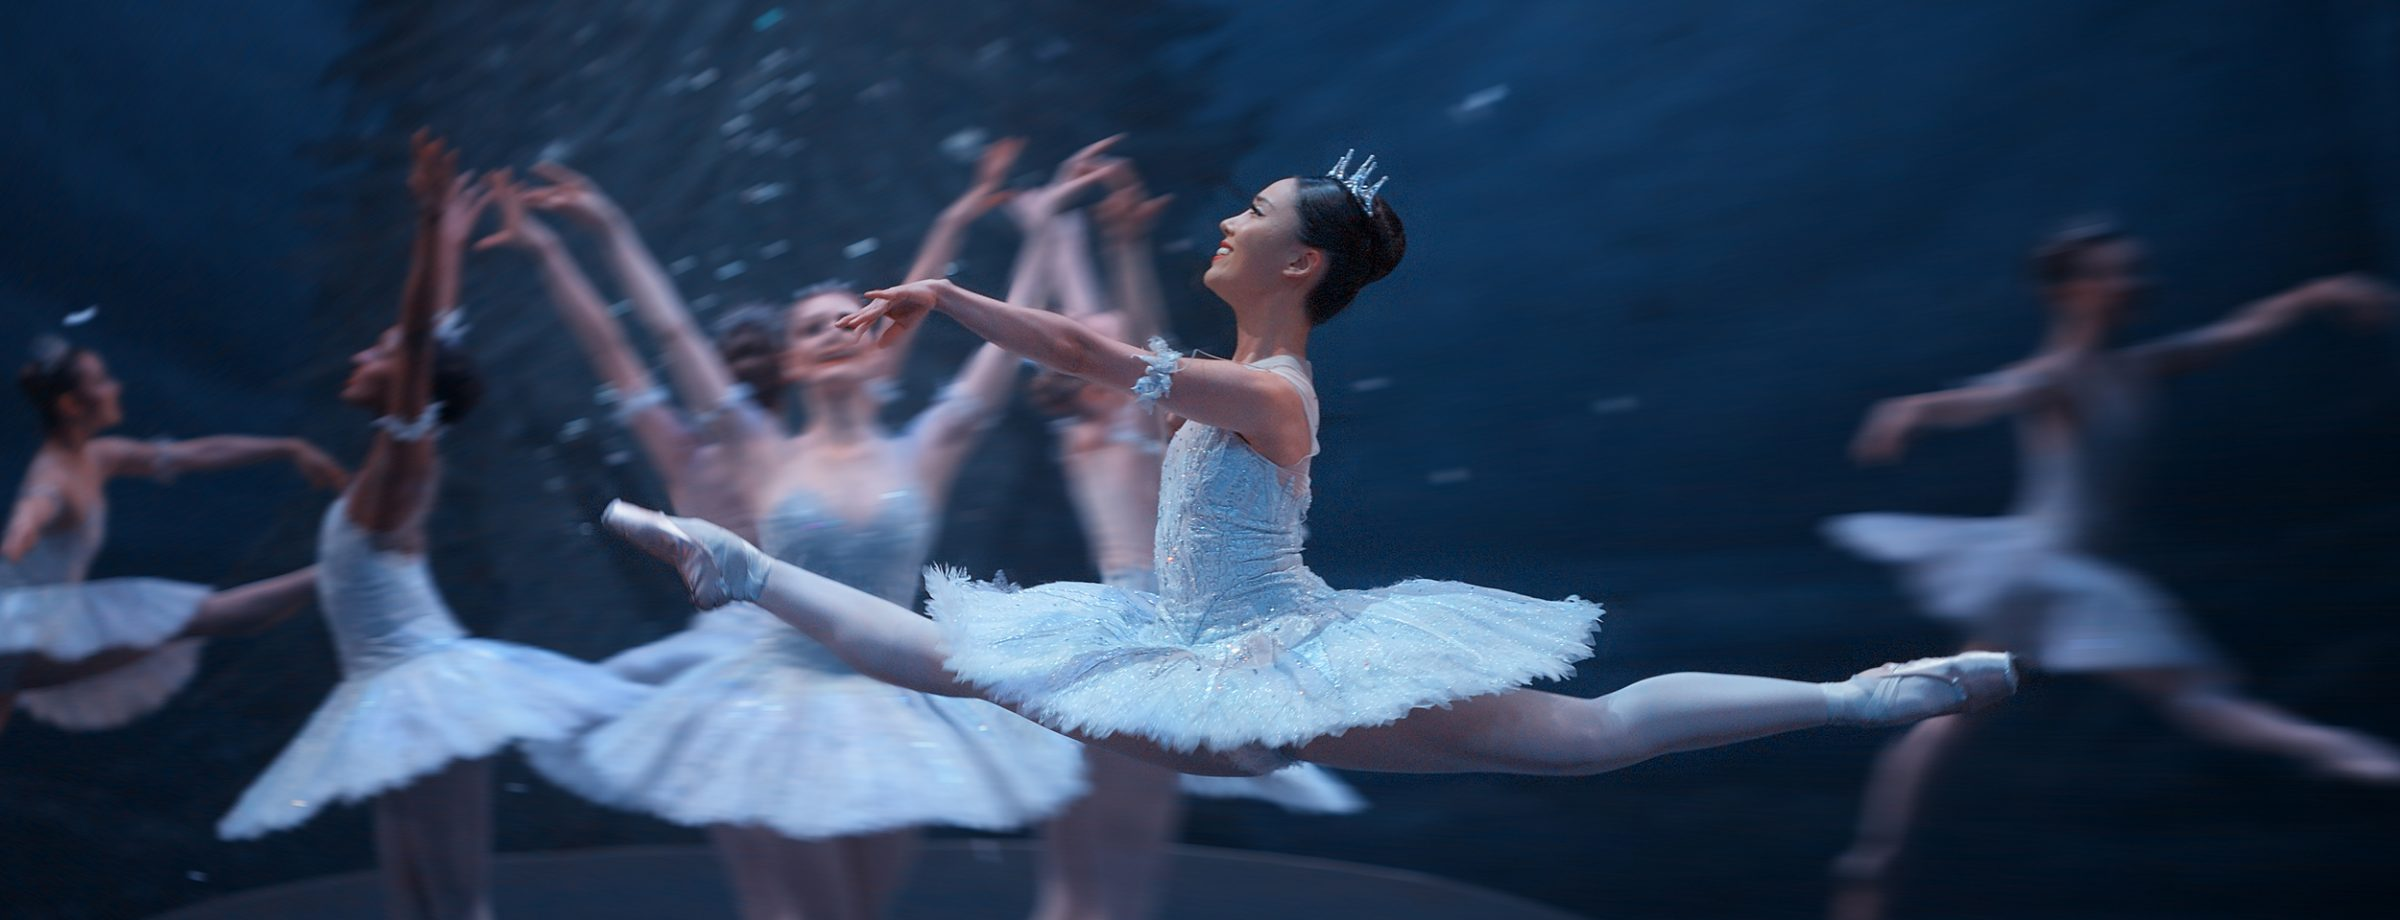 Jung-ah-Choi-in-English-National-Ballet's-Nutcracker-(C)-Laurent-Liotardo-2500px-for-web-